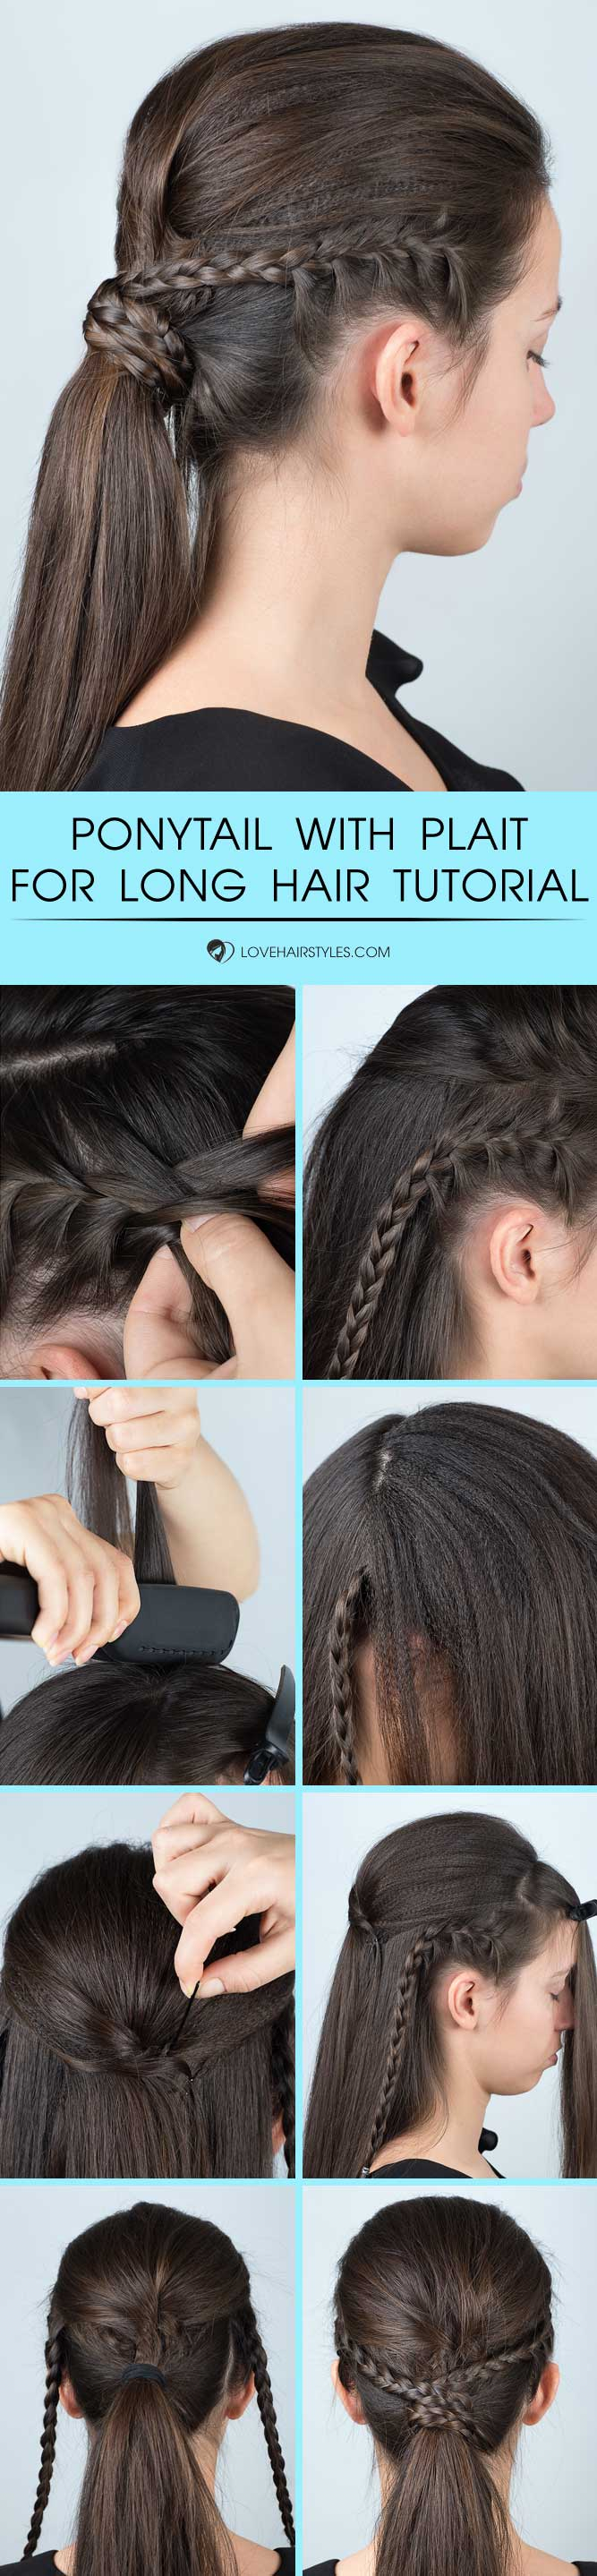 Volume Ponytail Hairstyle With Plait For Long Hair #braids #hairtutorial